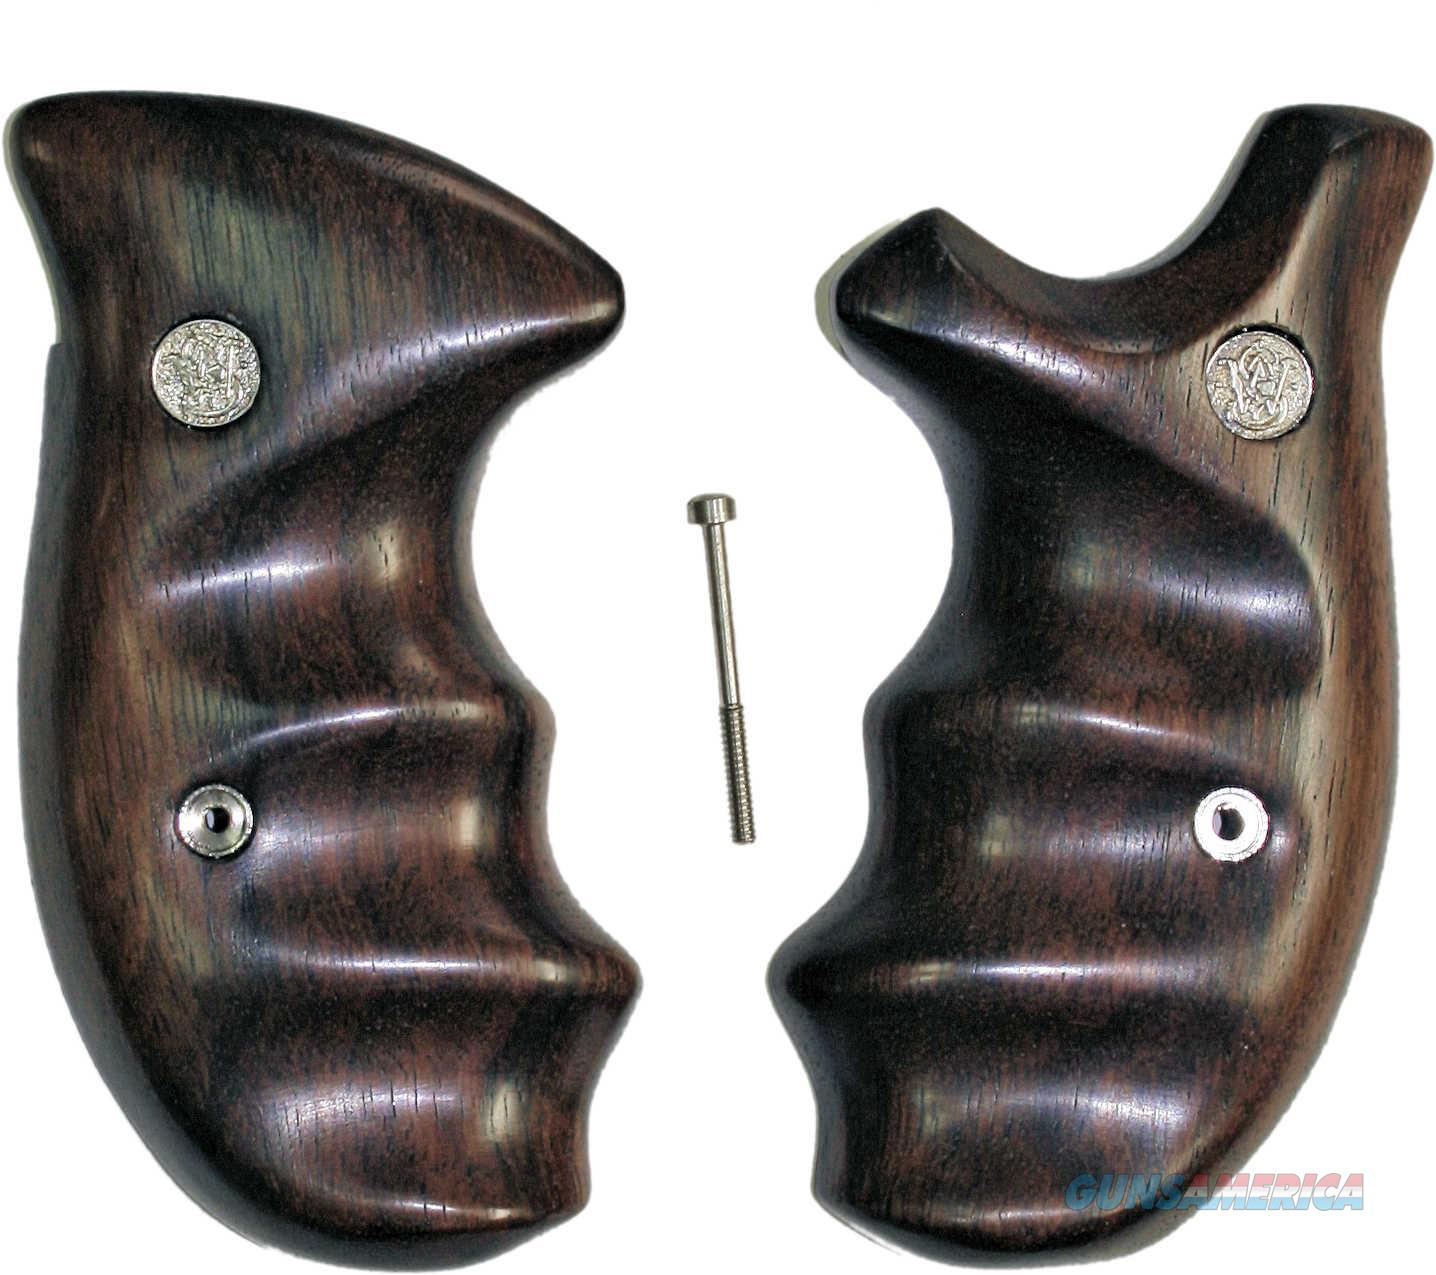 Smith & Wesson N Frame Smooth Rosewood Combat Grips, Round Butt  Non-Guns > Gun Parts > Grips > Smith & Wesson